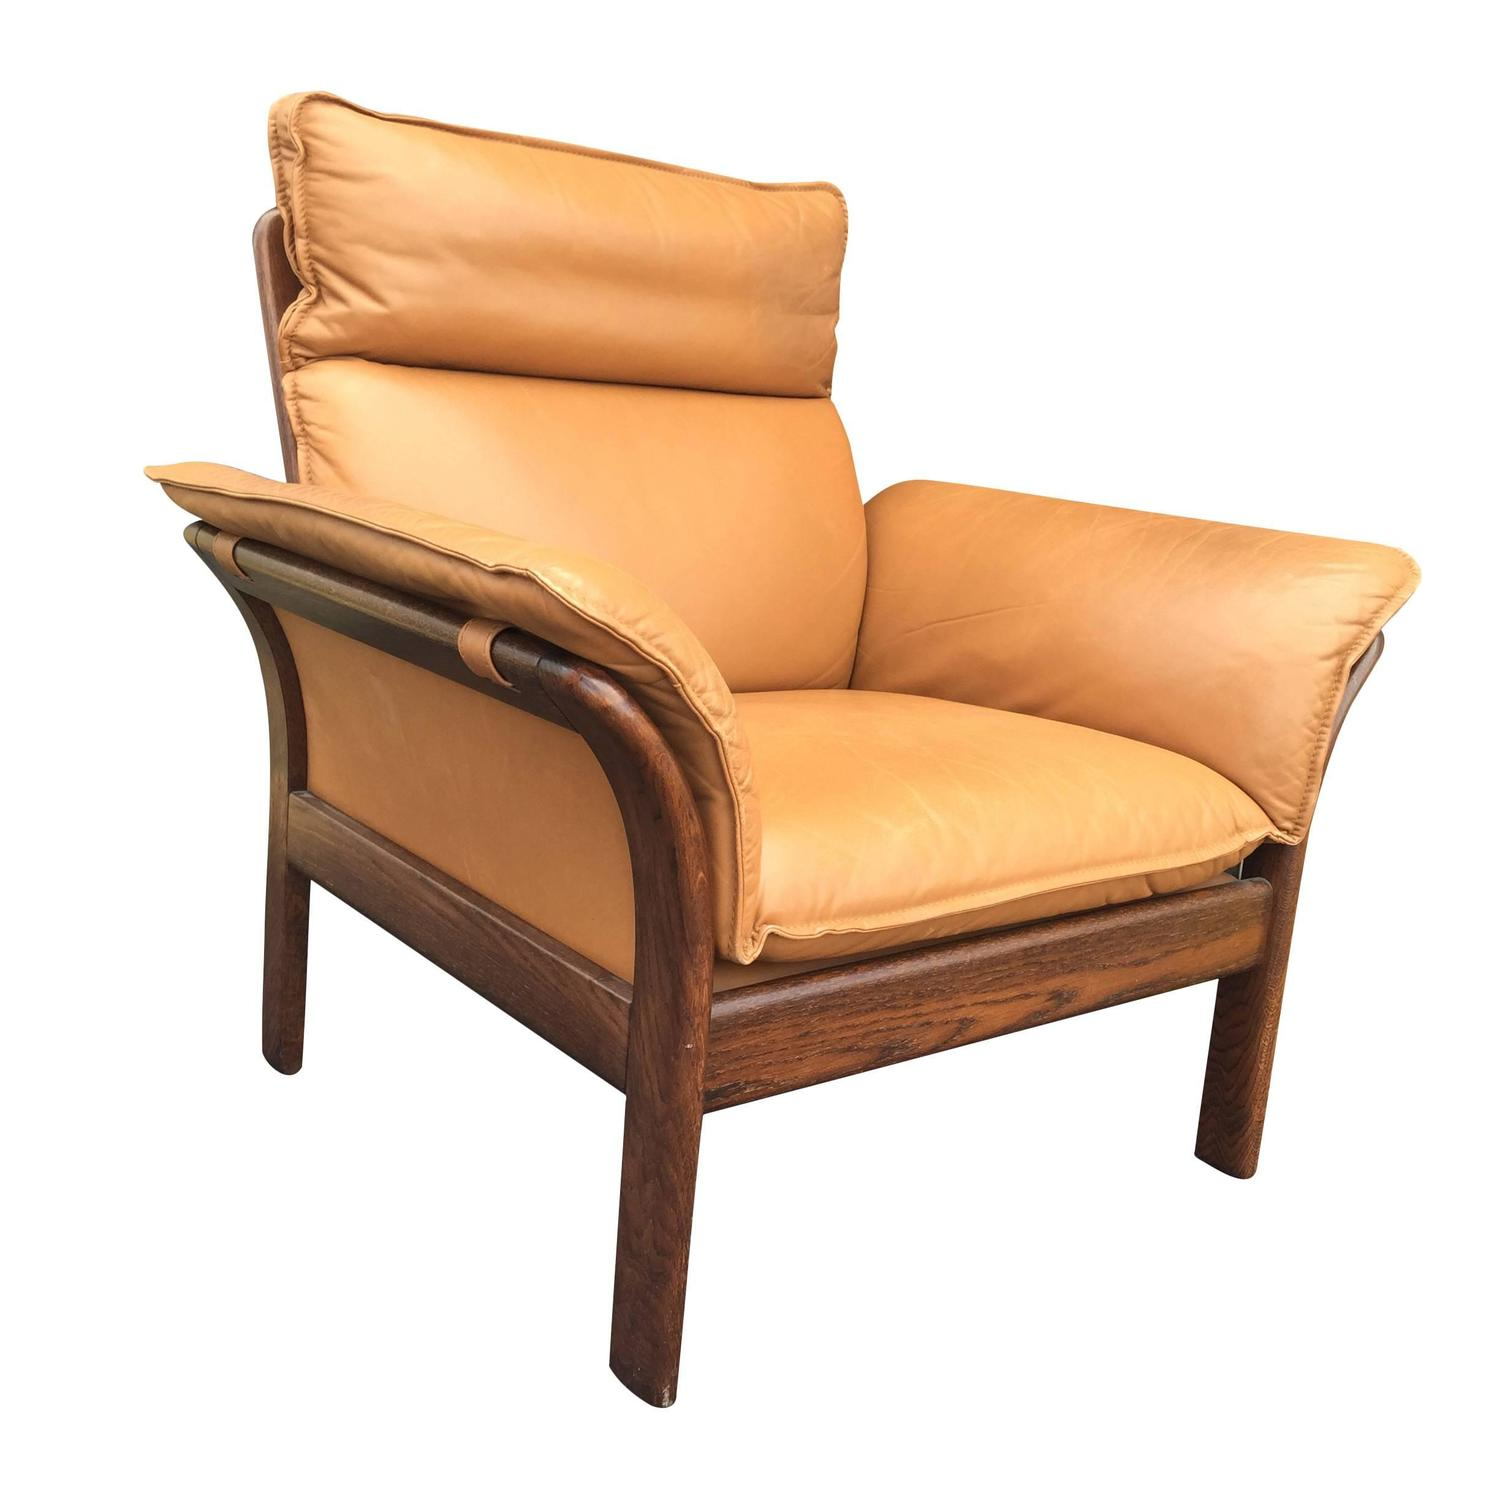 1970s Camel Leather and Rosewood Scandinavian Chair at 1stdibs